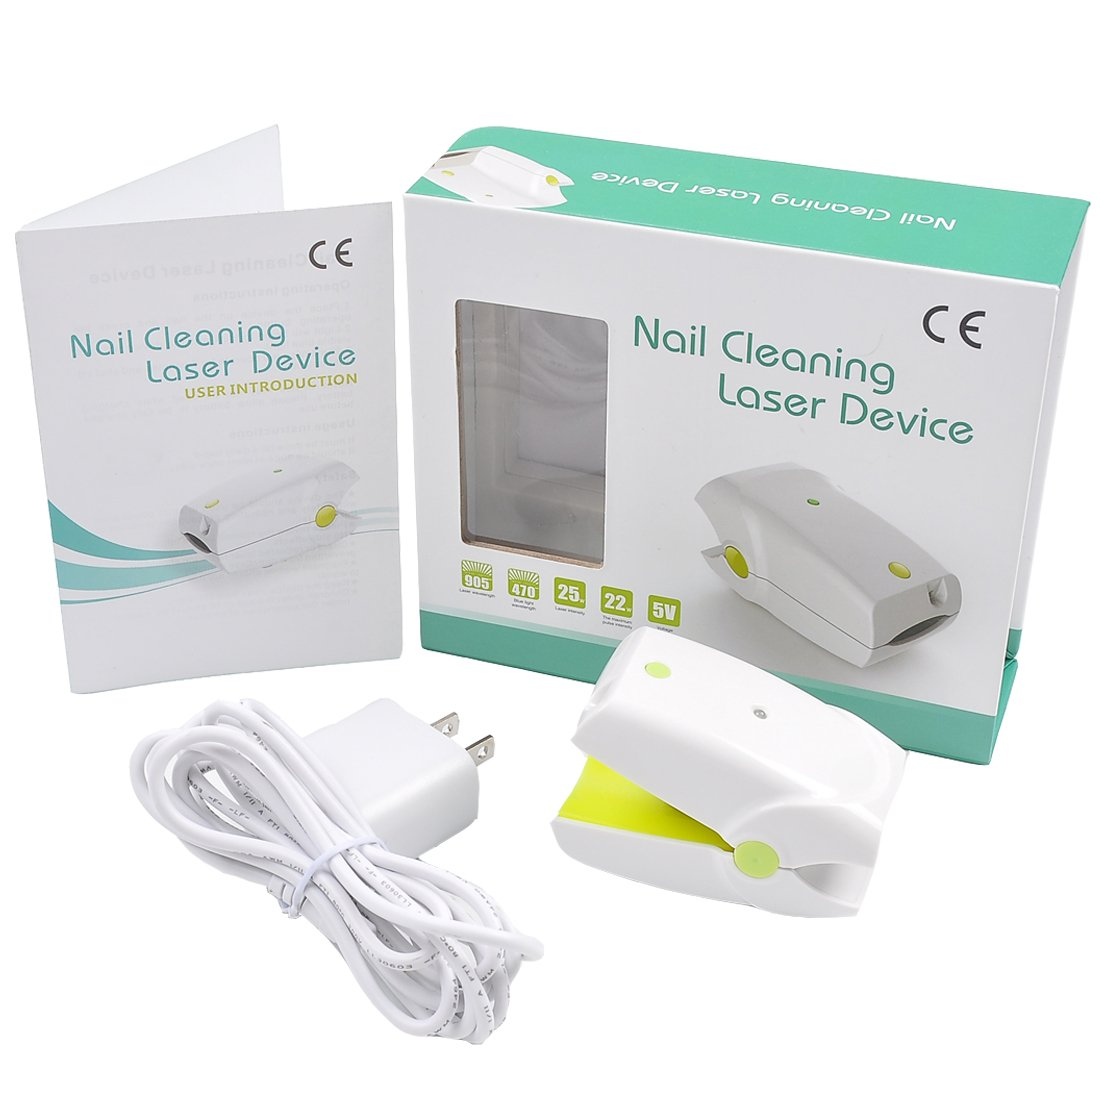 Nail Cleaning Laser Device Professional Safe, Quick and Painless Nail Fungus Treatment For Toe And Finger Nails To Use At-Home No Side Effects …